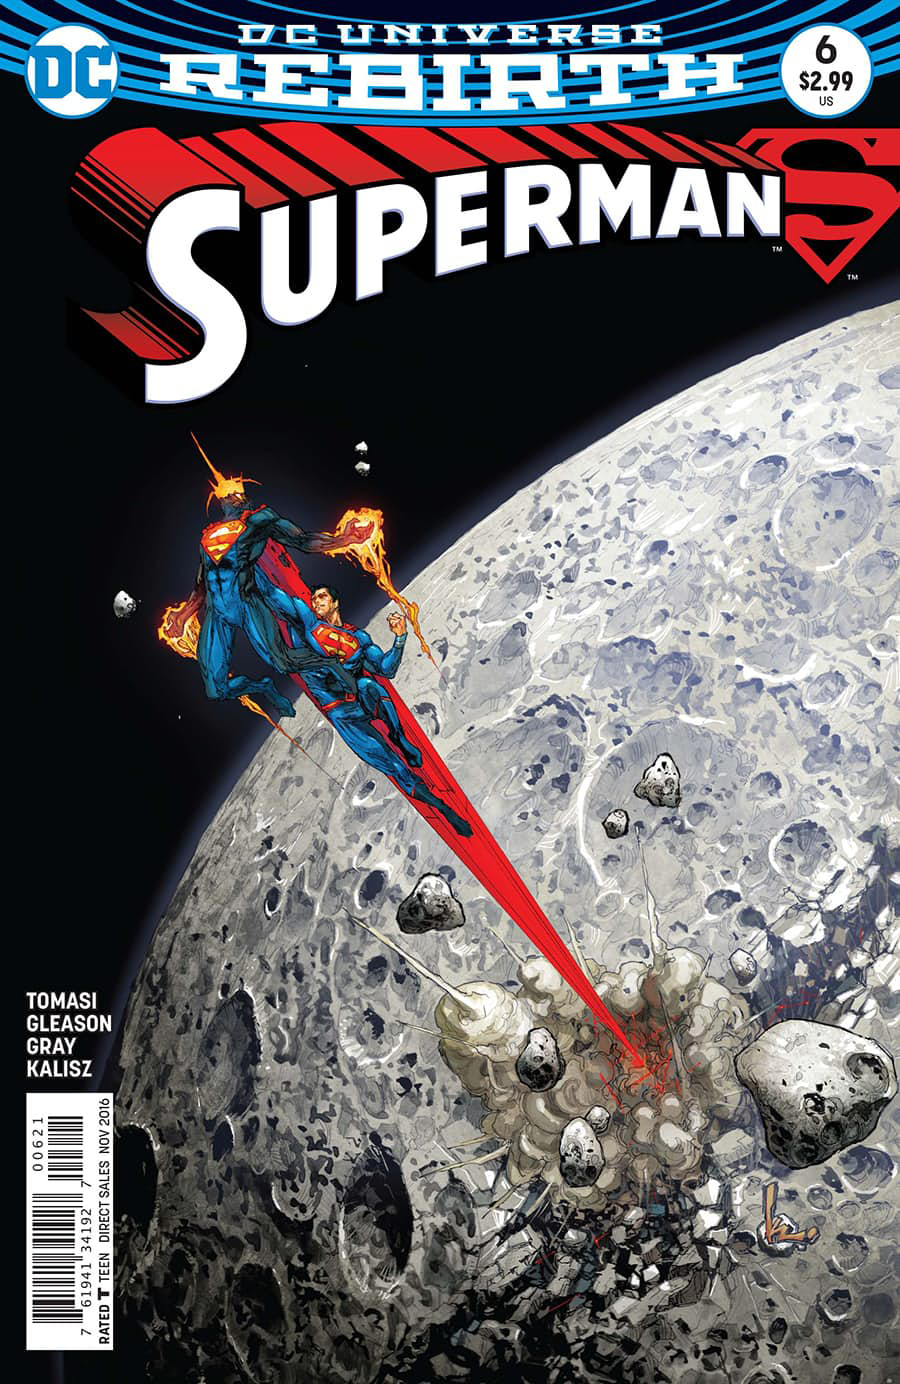 SUPERMAN #6 VAR ED